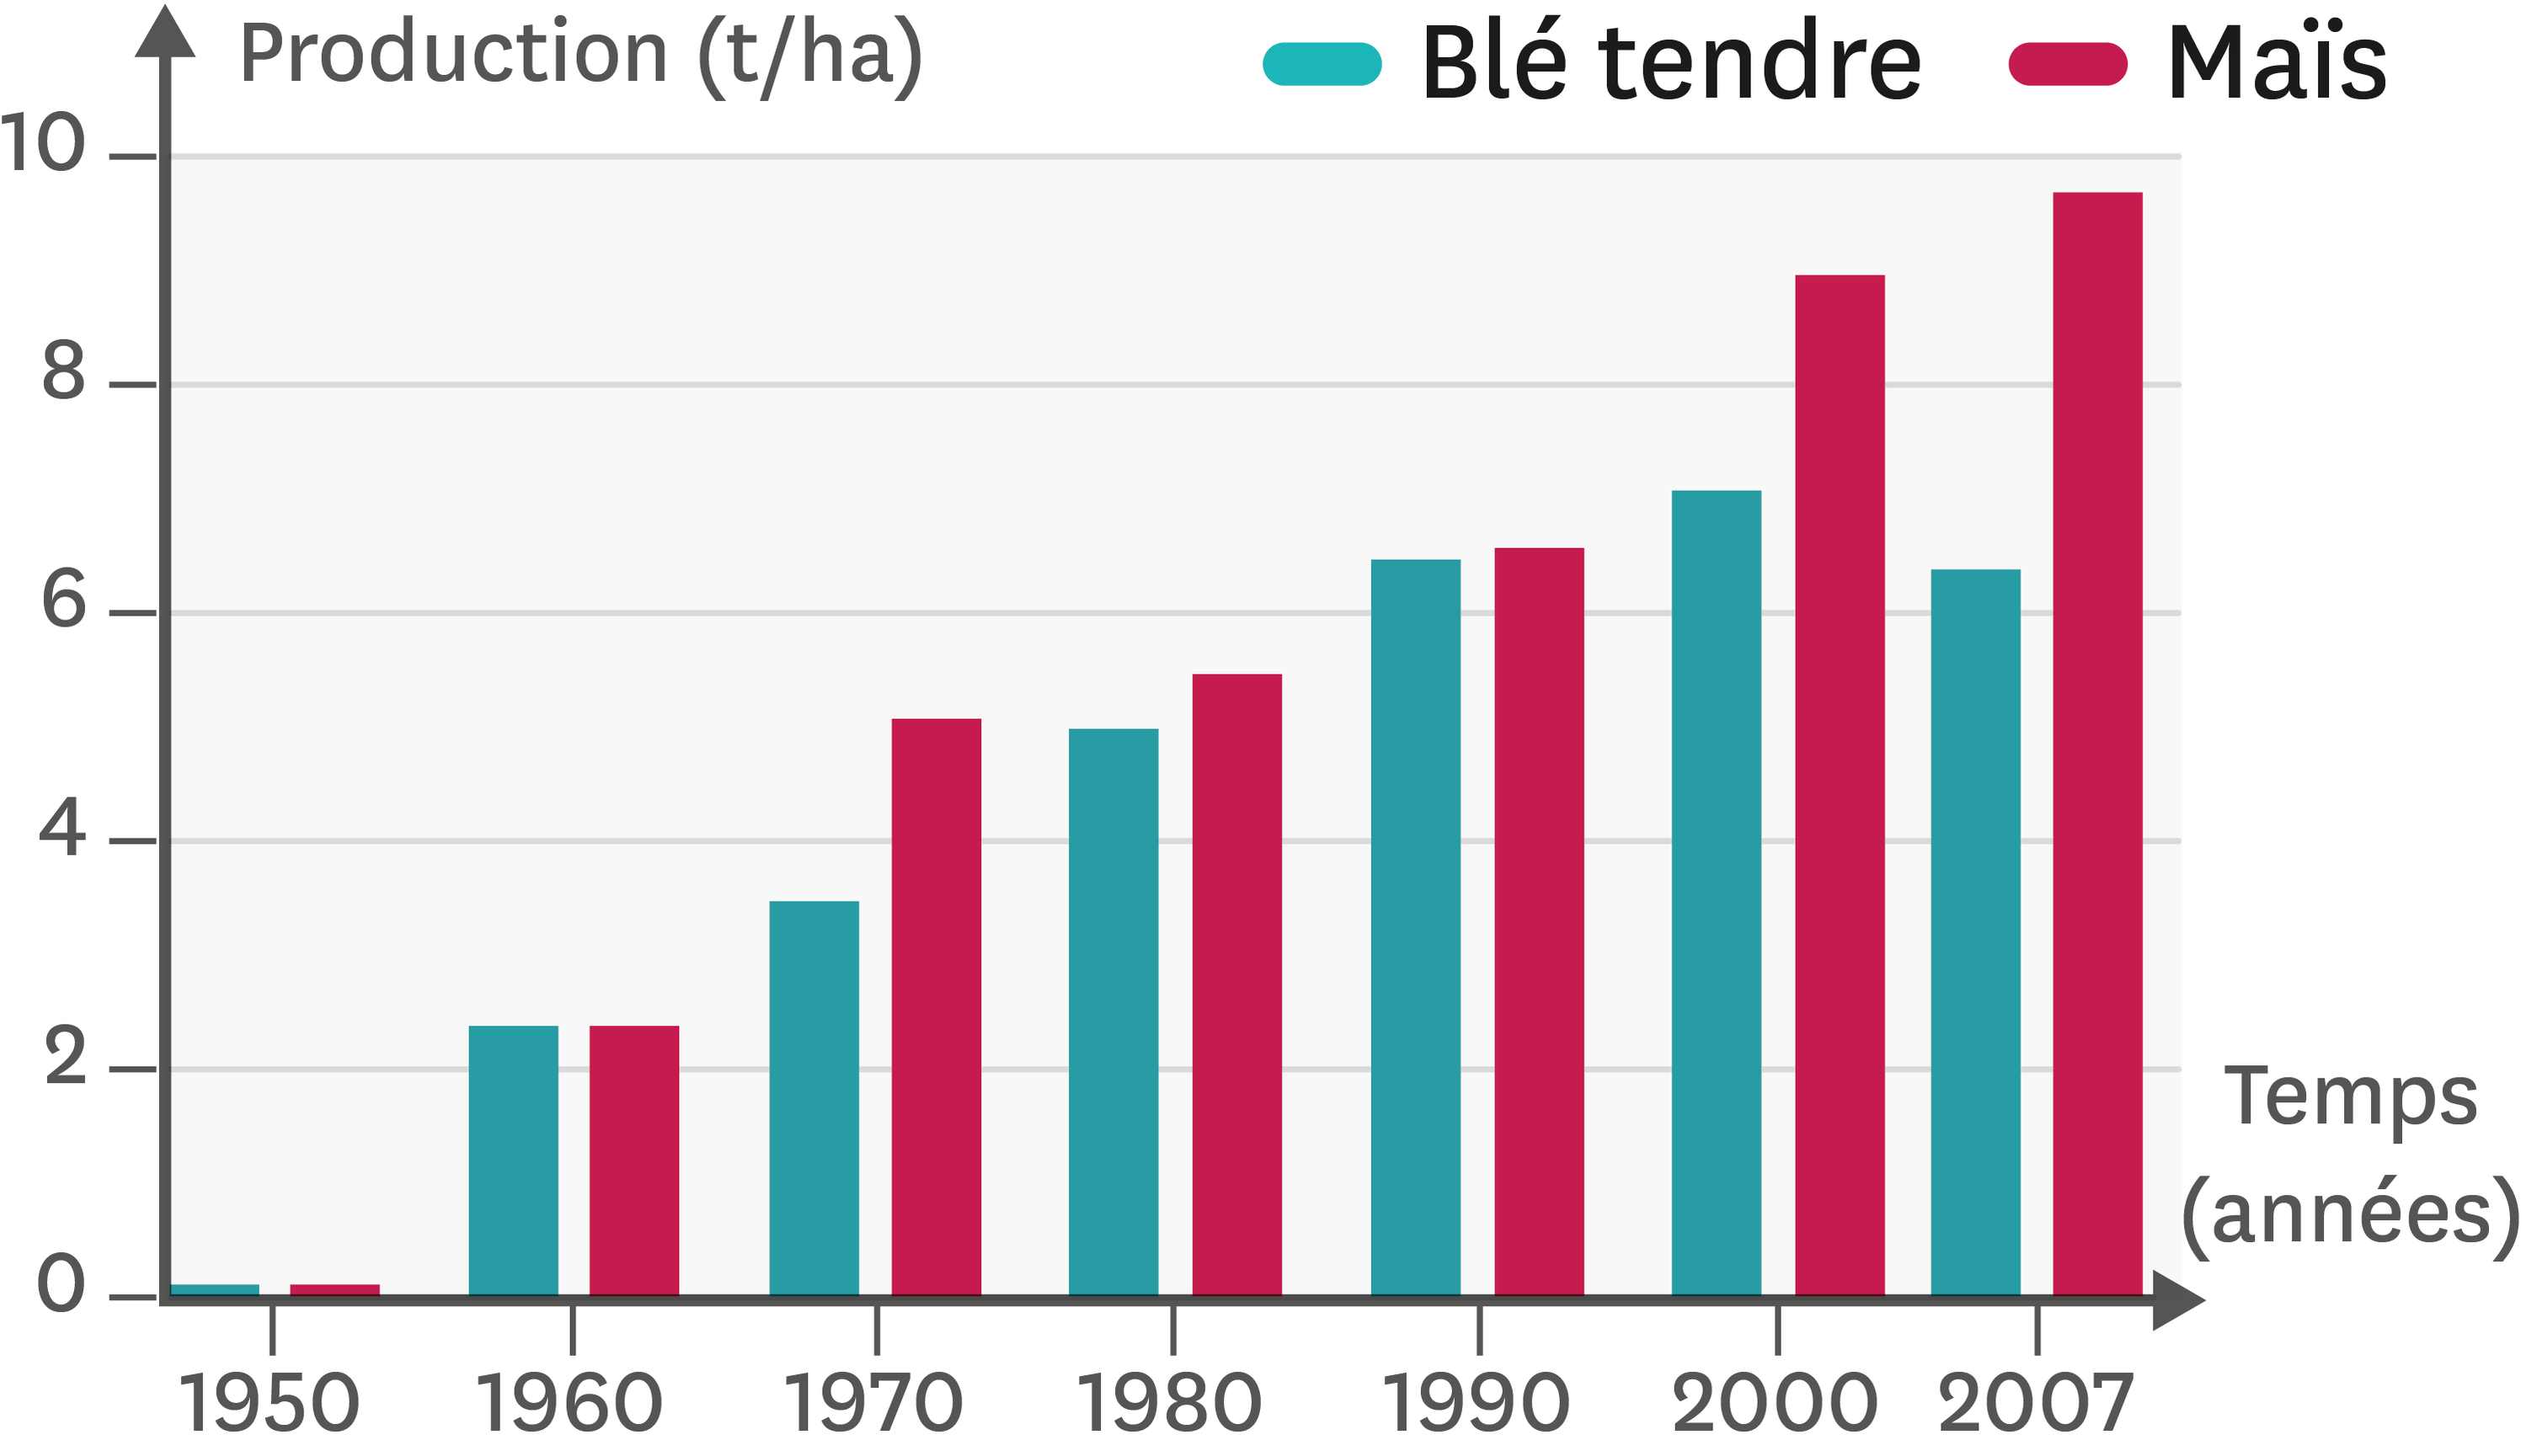 La production agricole en France depuis 1950.